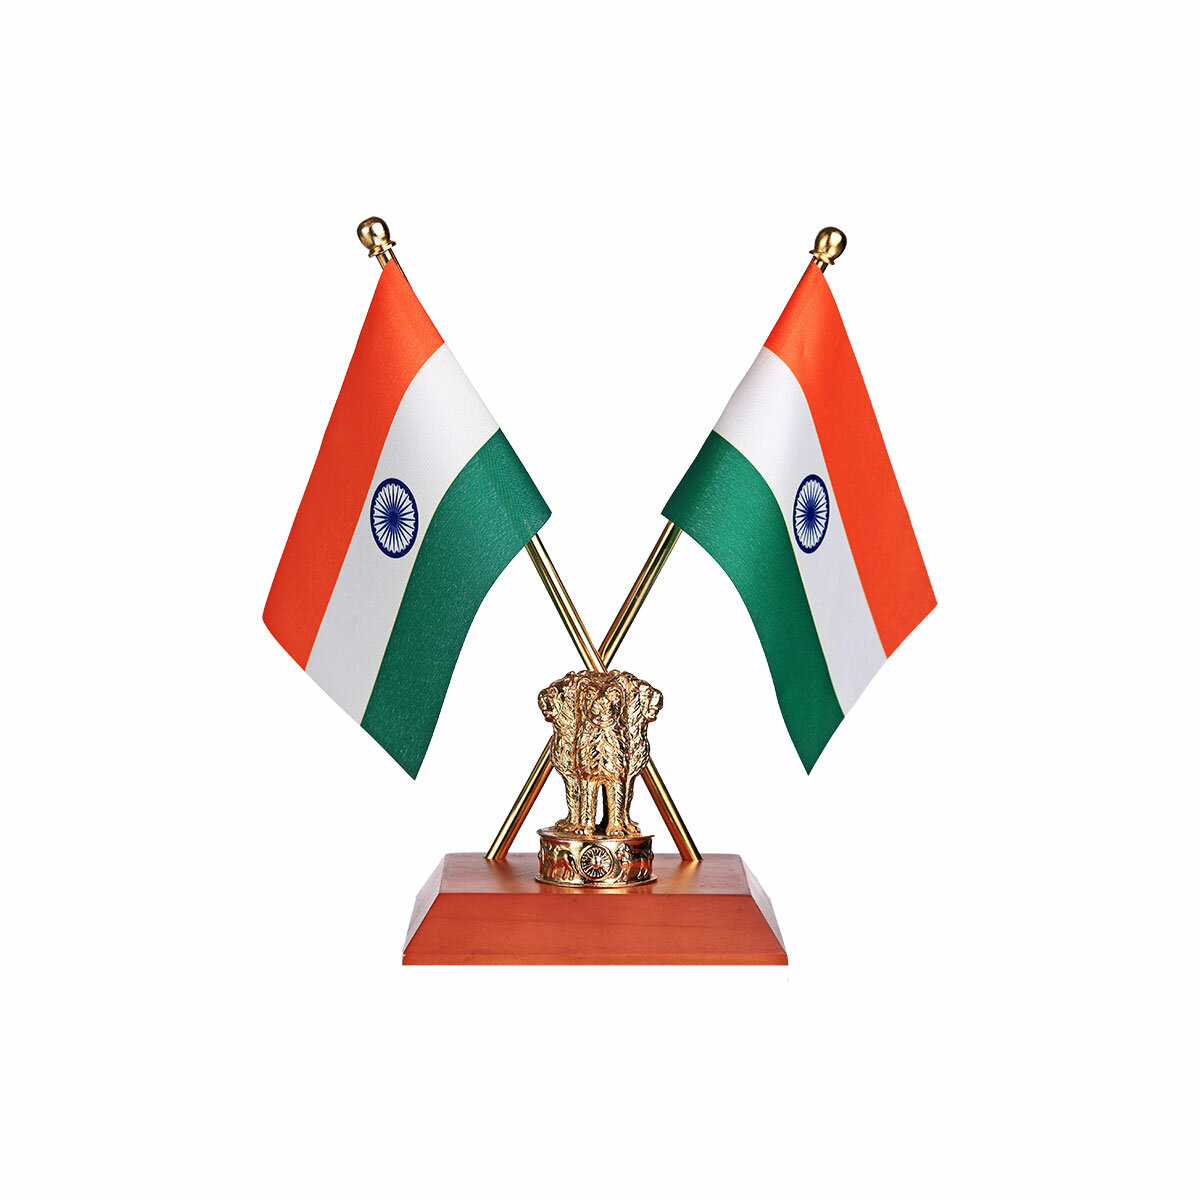 Cross Indian Flags With Our Exclusive Gold Plated Brass Ashok Stambh on A Polished Wooden Base